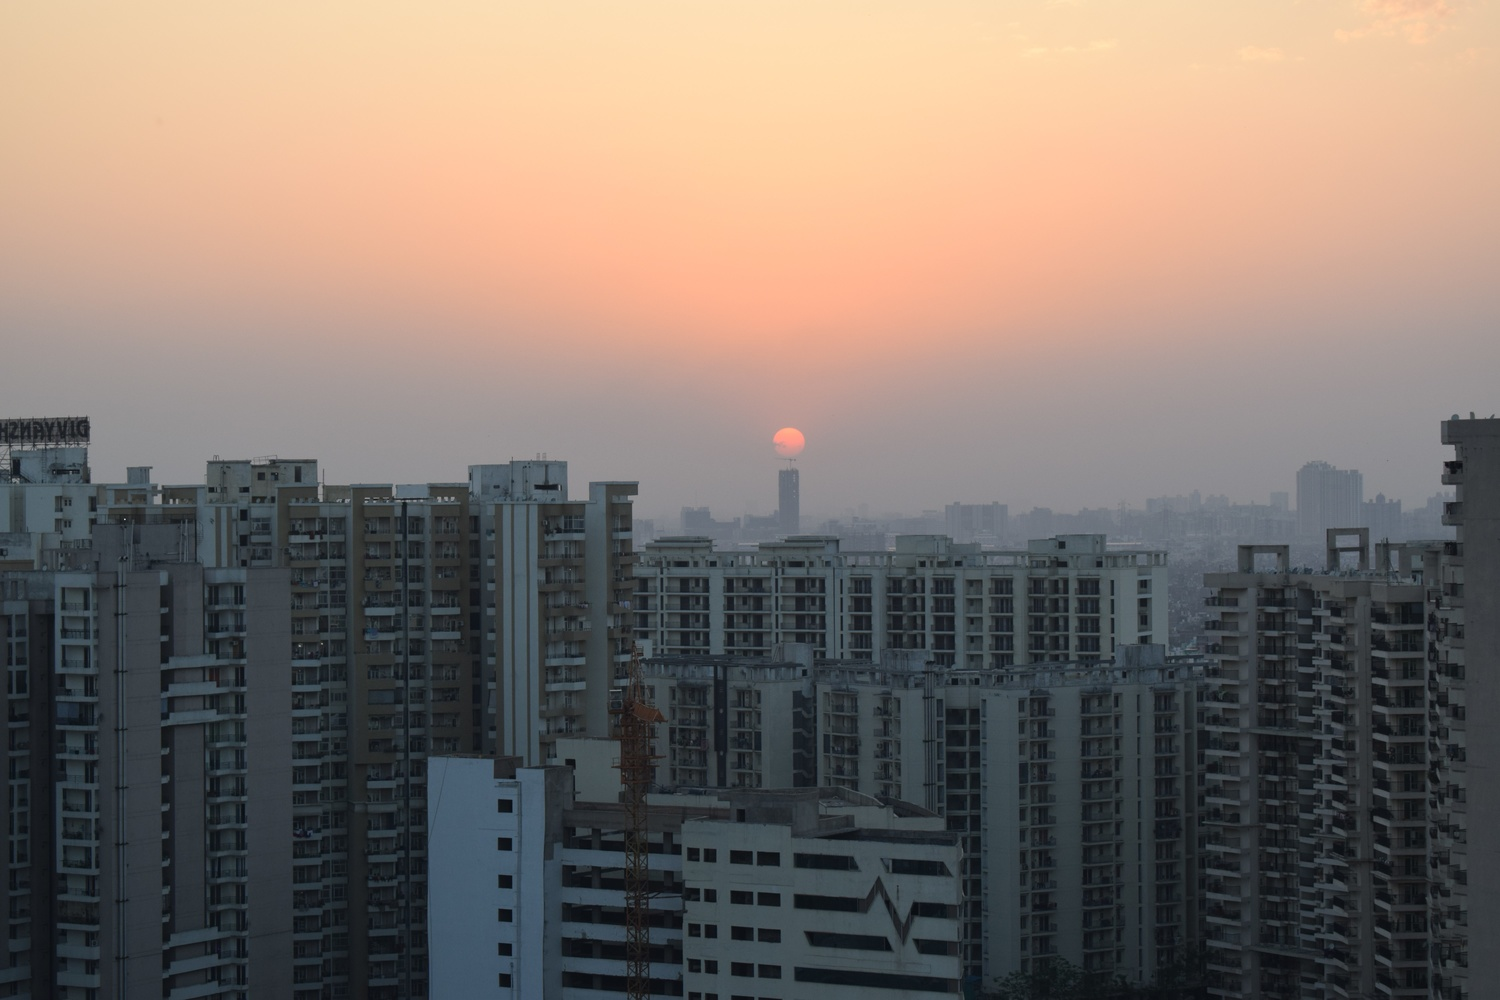 Sunset Over Tall Buildings by Ritesh Dixit